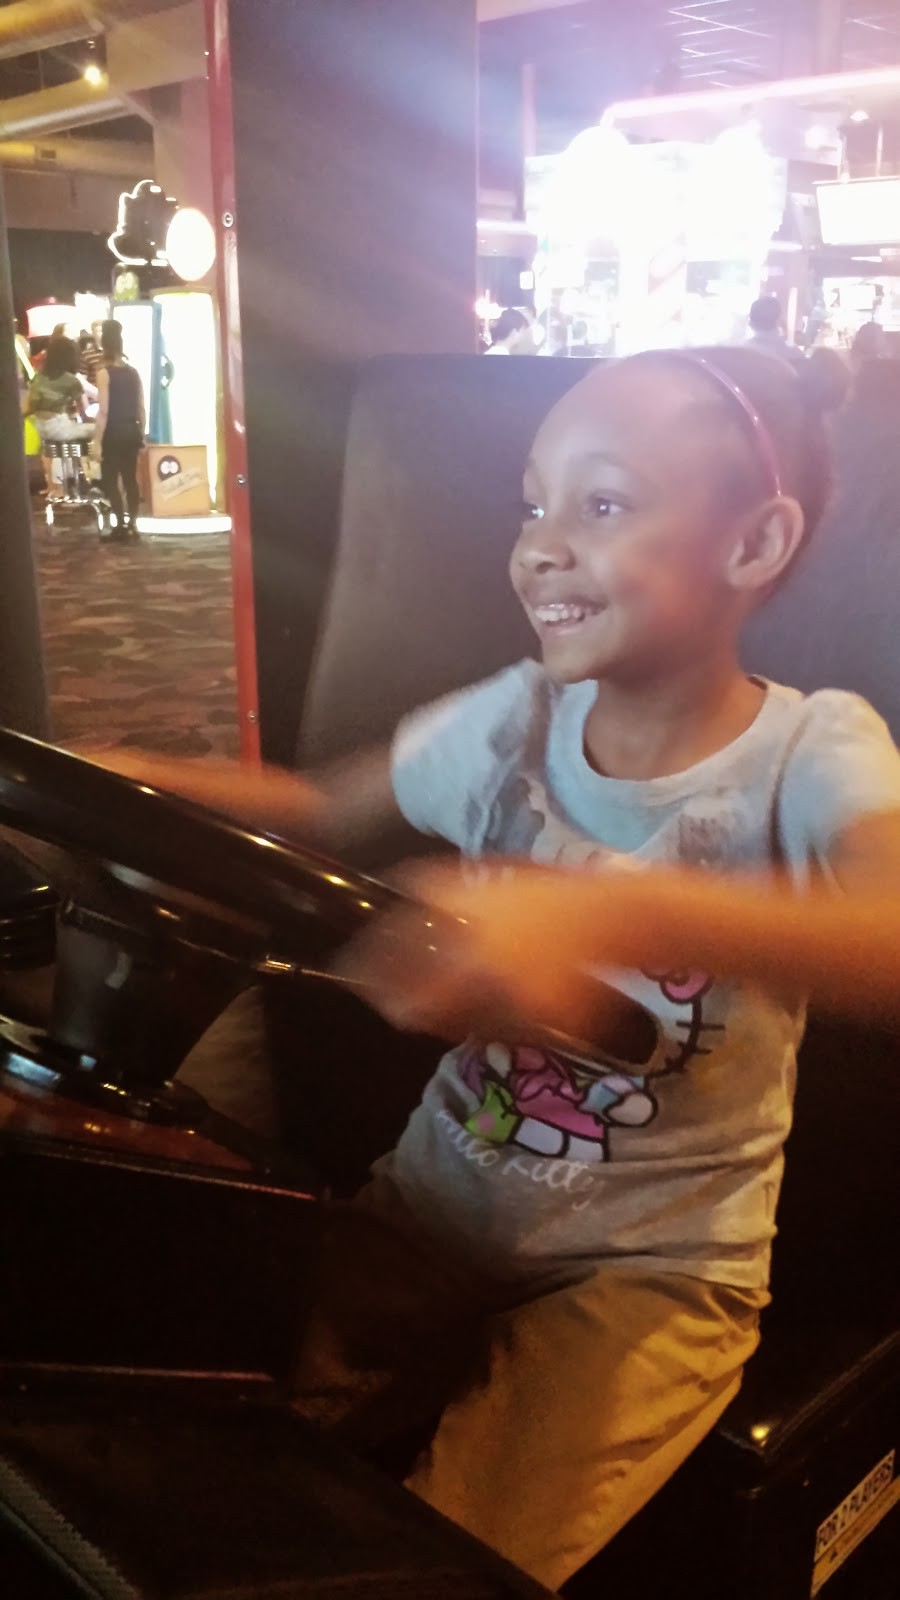 Dave and Busters- Children